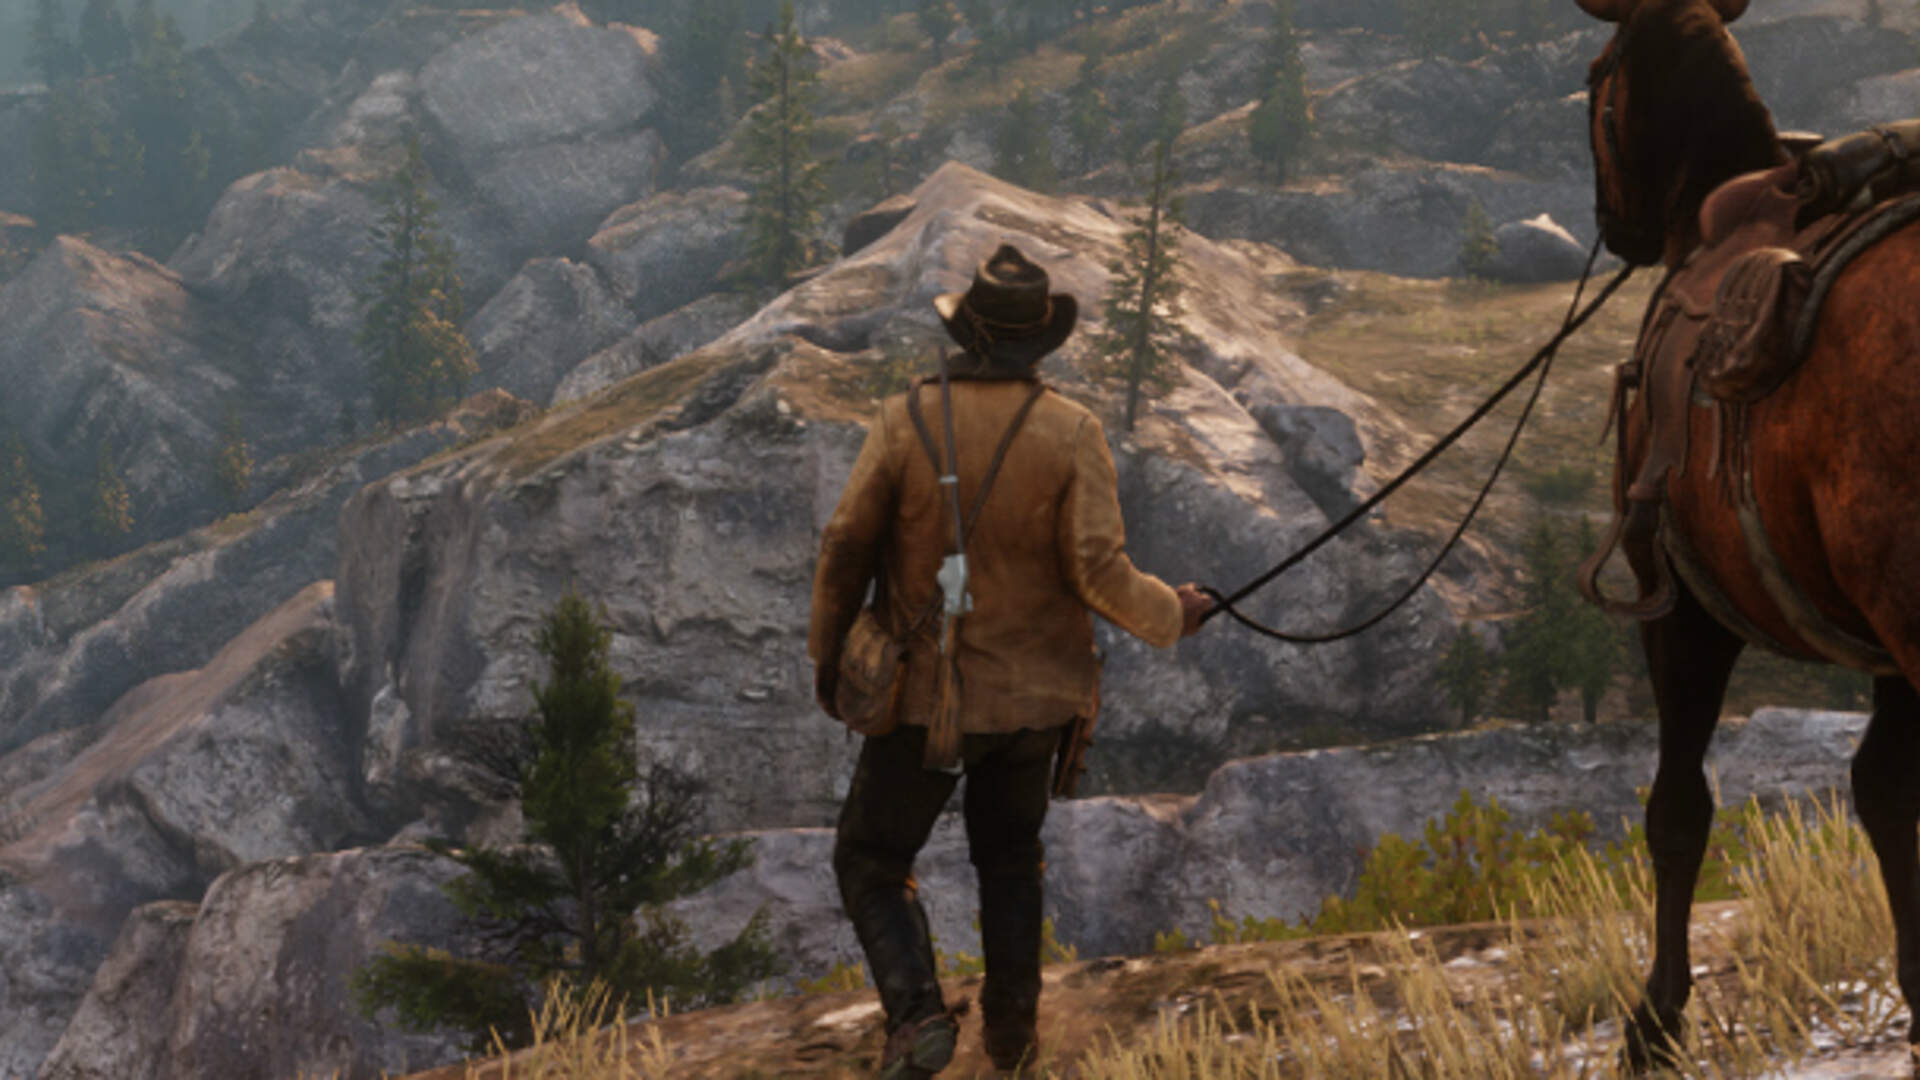 One Terminally Ill Gamer Given Chance to Play Red Dead Redemption 2 Early